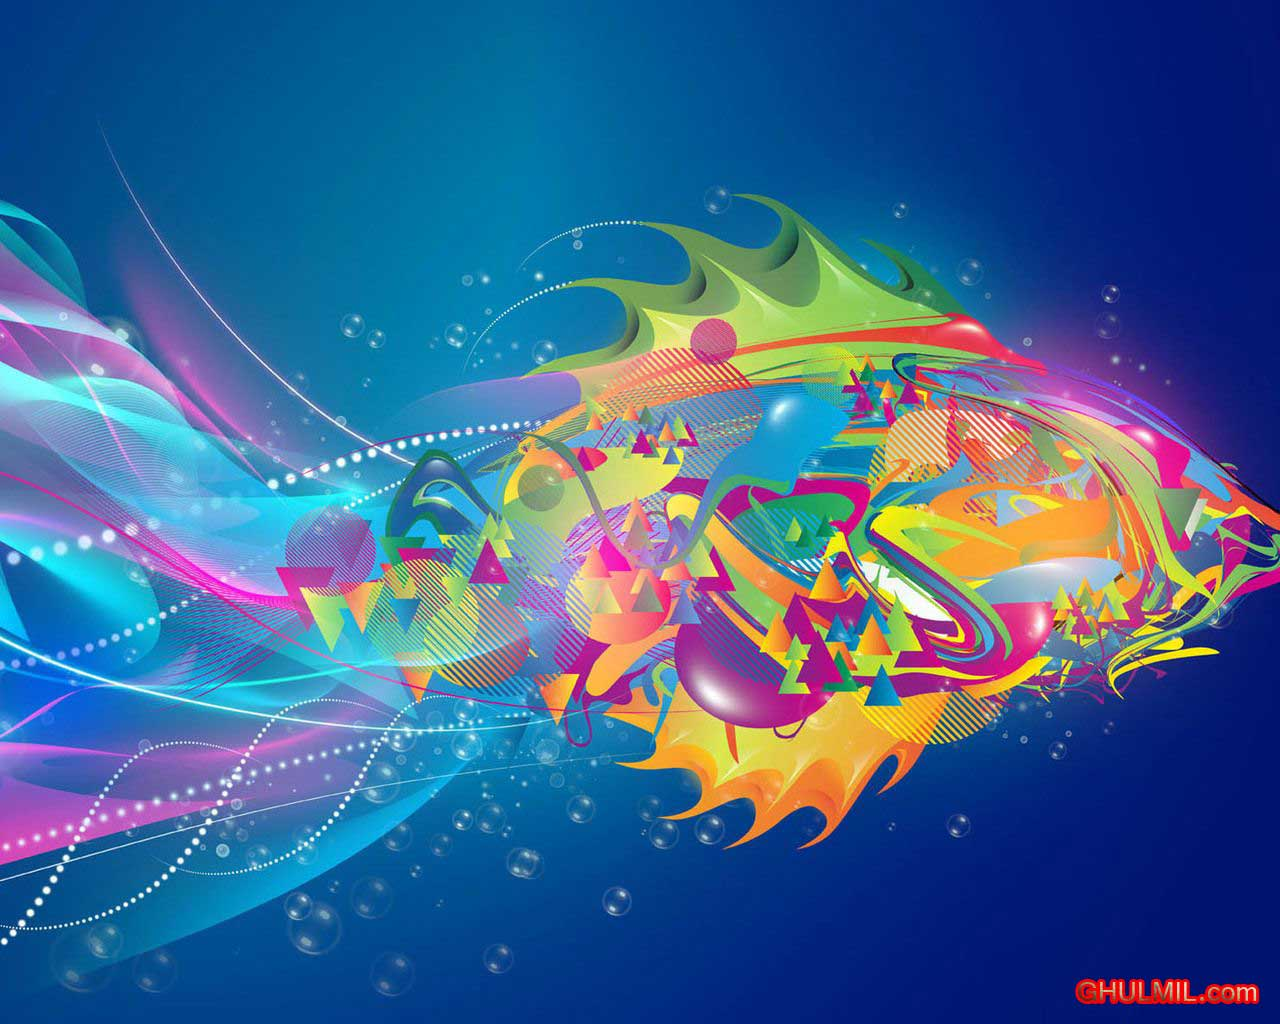 Cool 3d Pictures 9498 Hd Wallpapers in 3D   Imagescicom 1280x1024